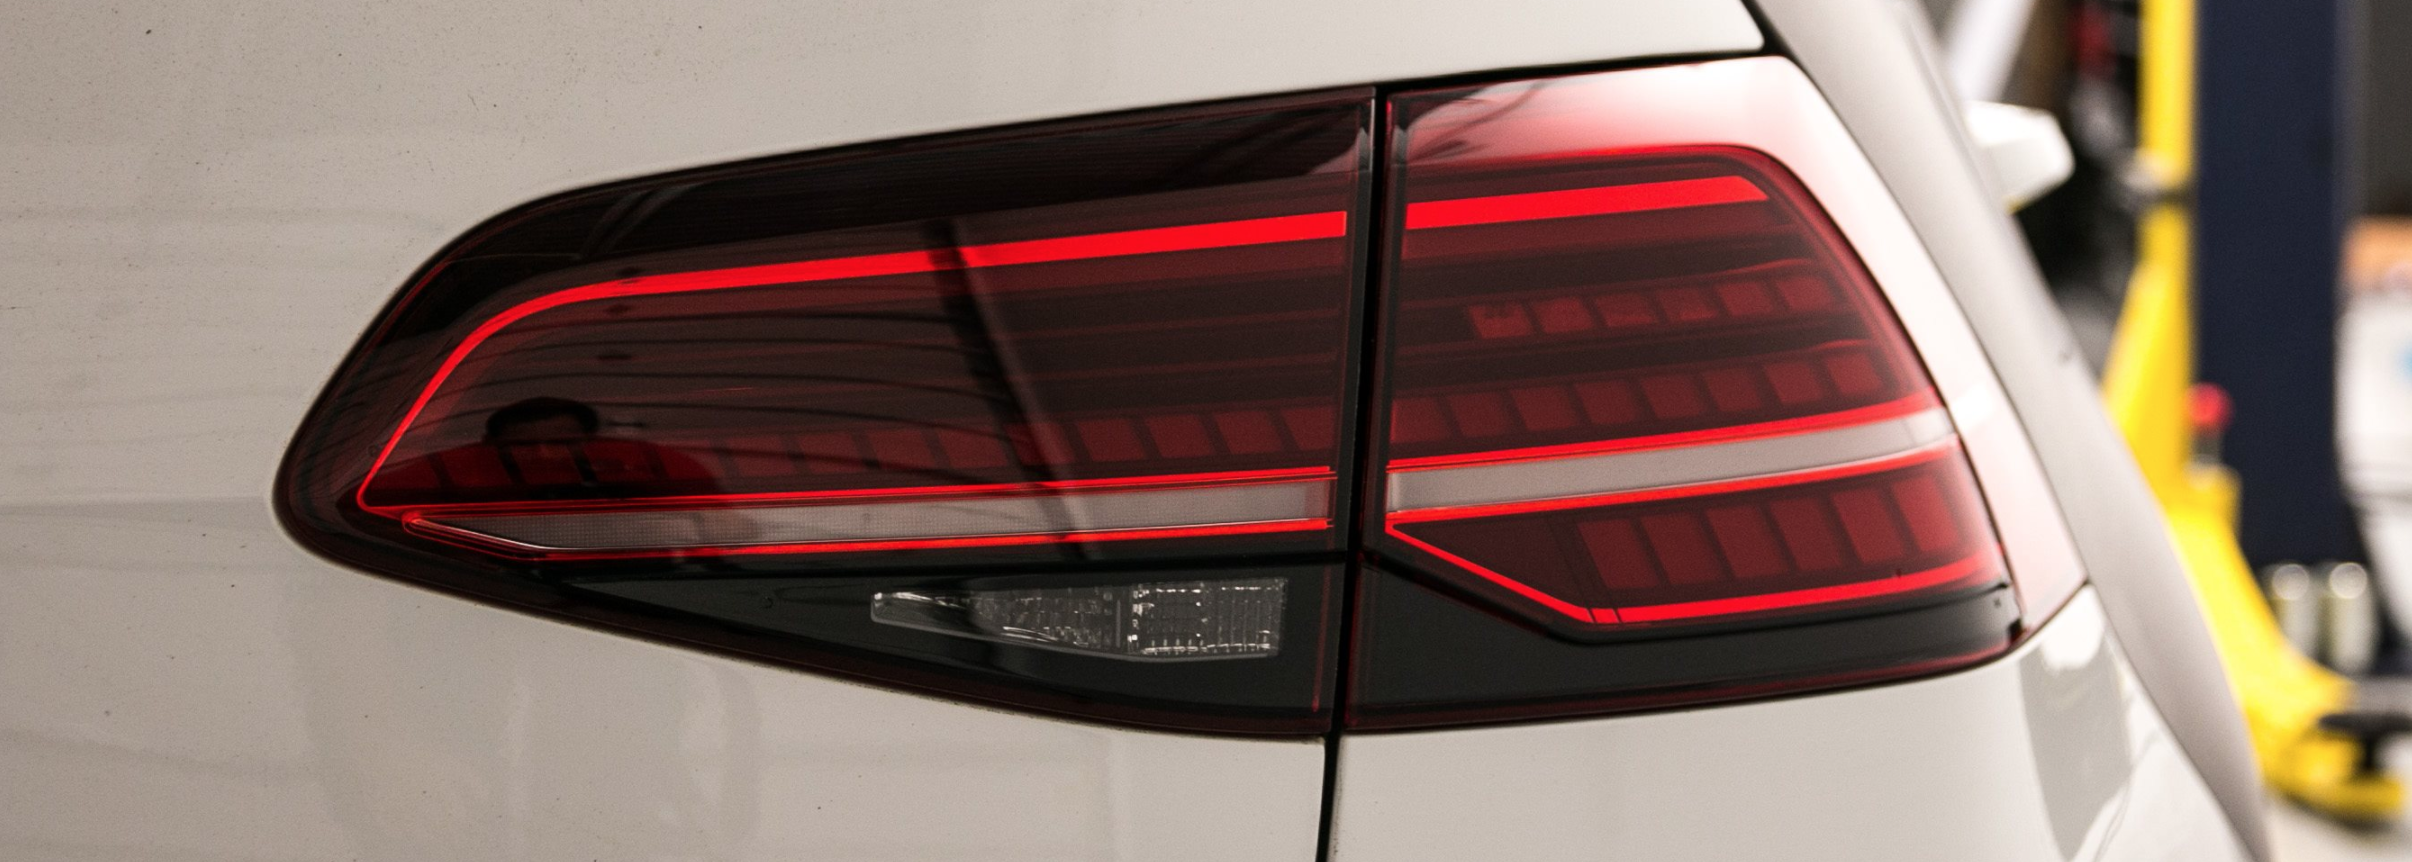 d2a6fcd4f8 Part 8 (Euro LED Tail Lights) of the DAP MK7 GTI Build - Articles ...